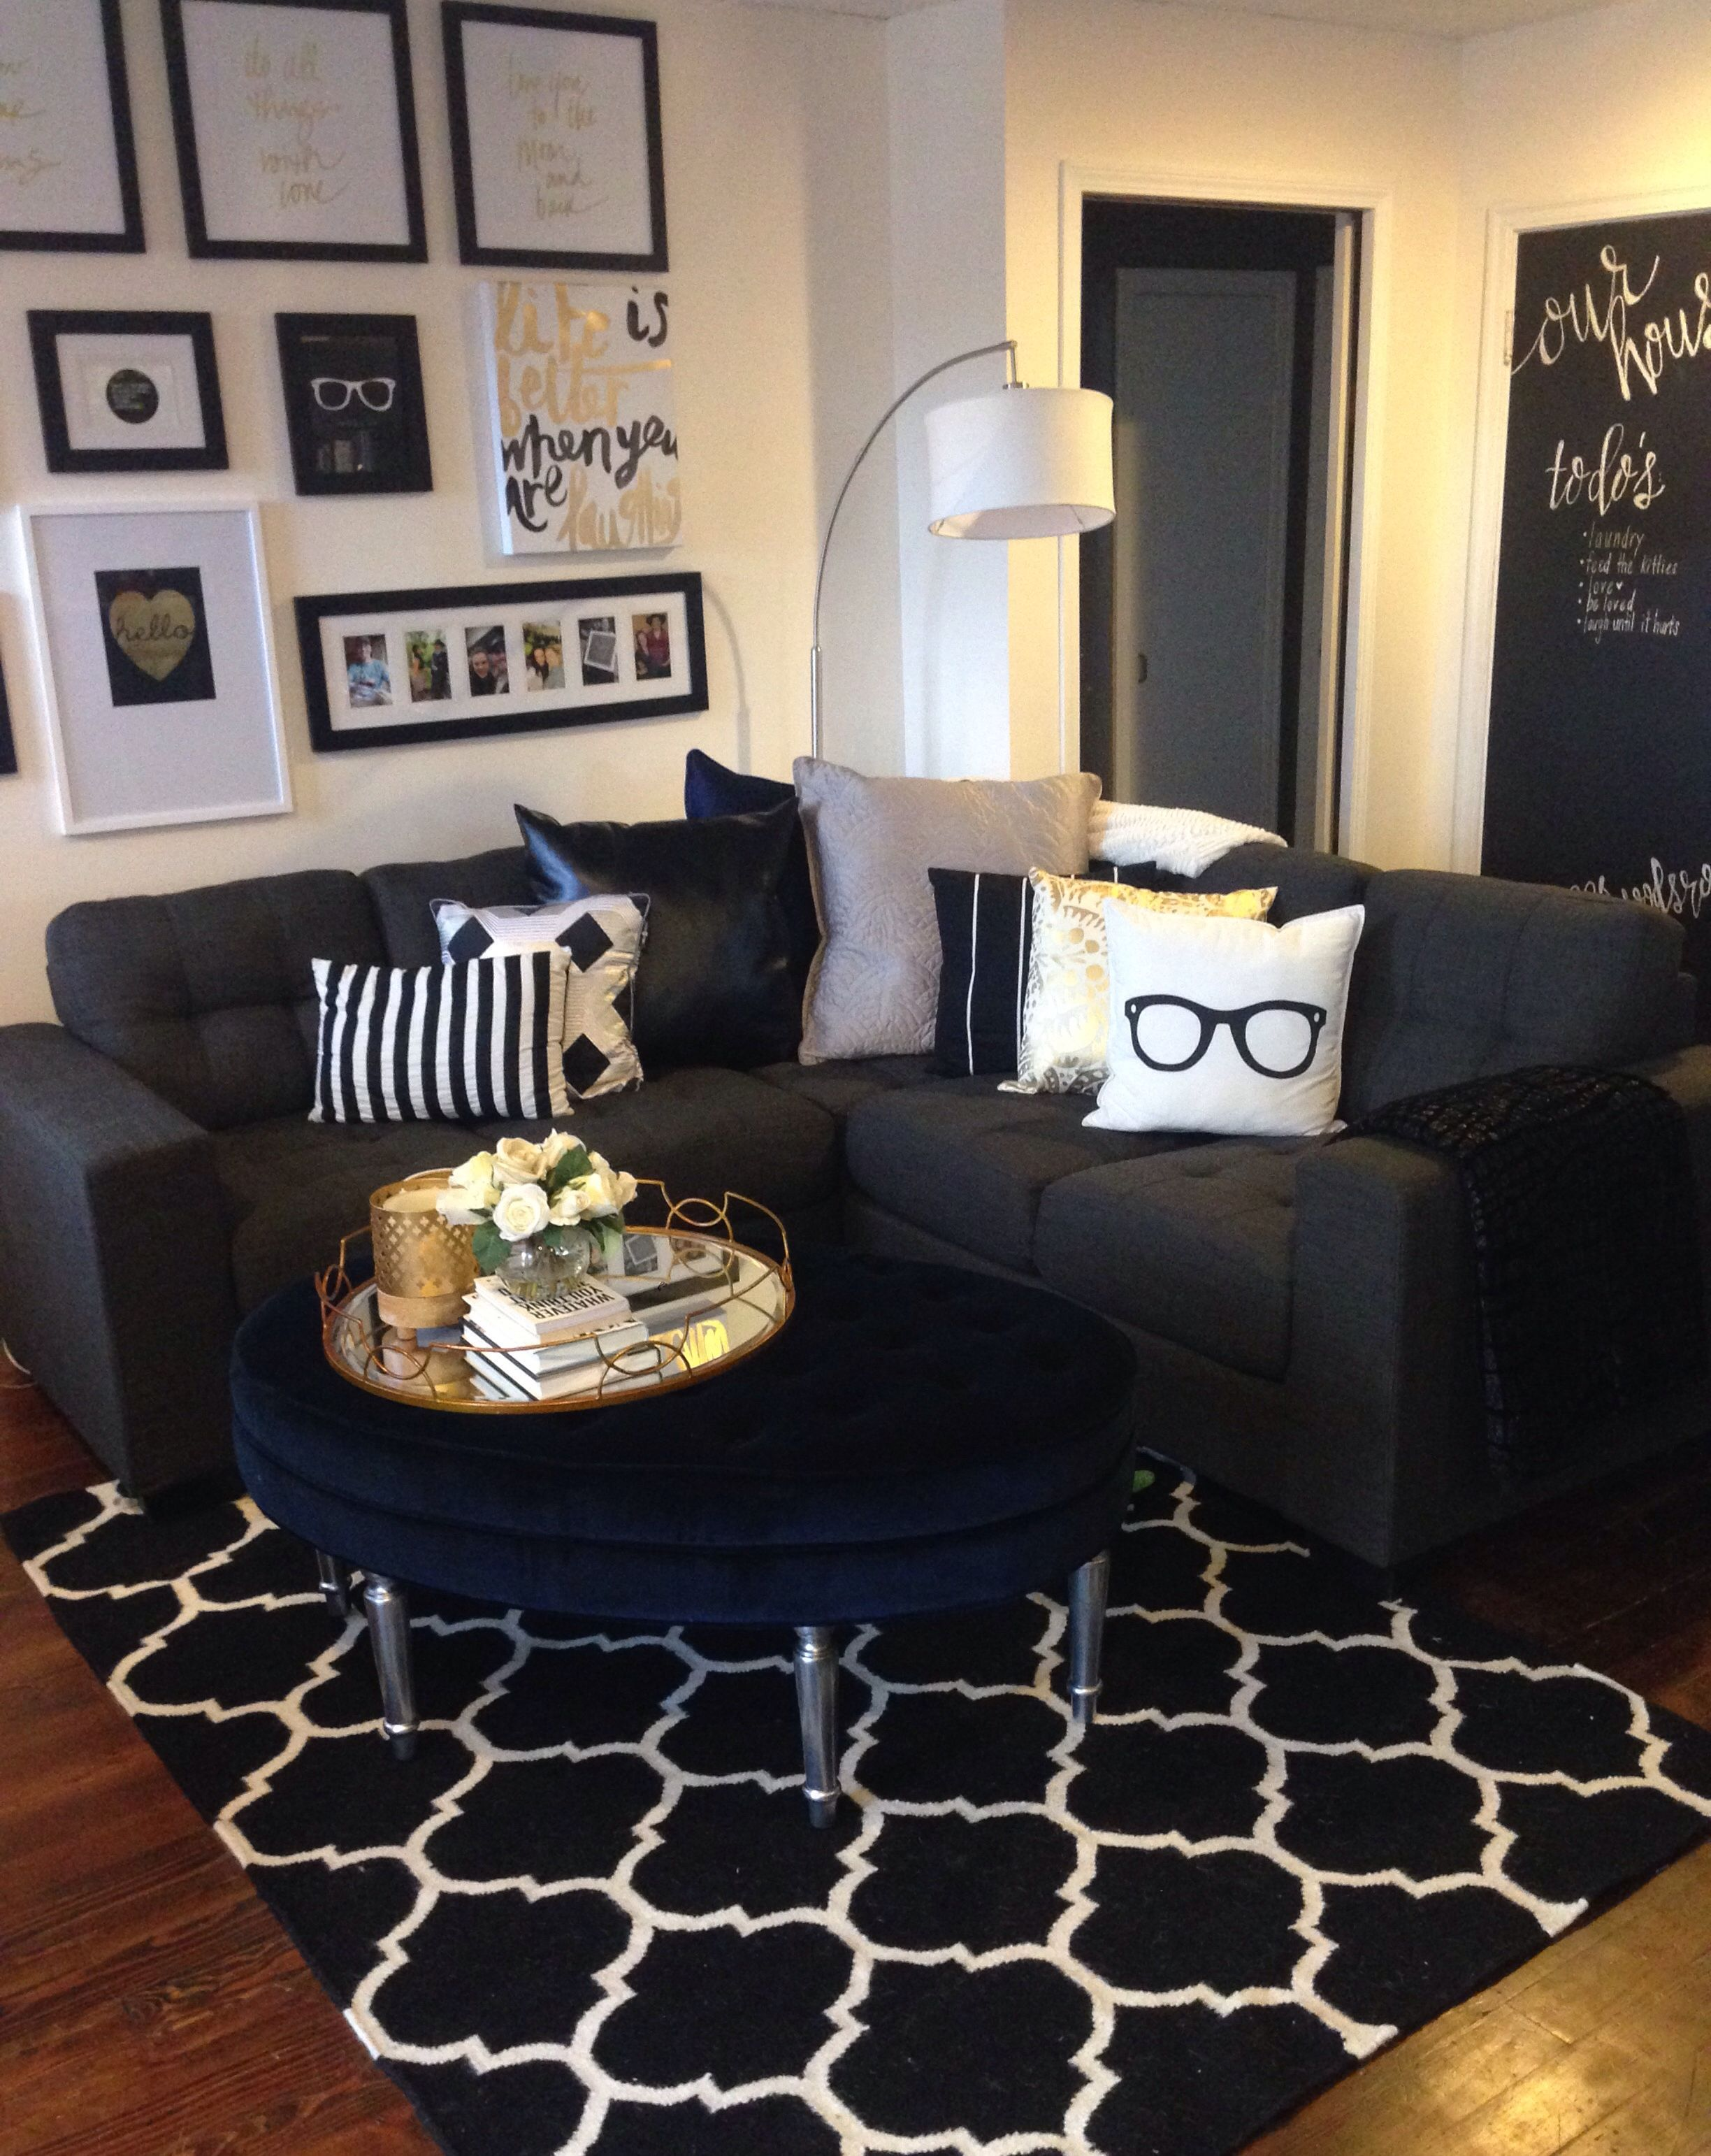 Mini Living Room Re Do Classic Black White And Gold With Pops Of Navy Gallery Wall Large